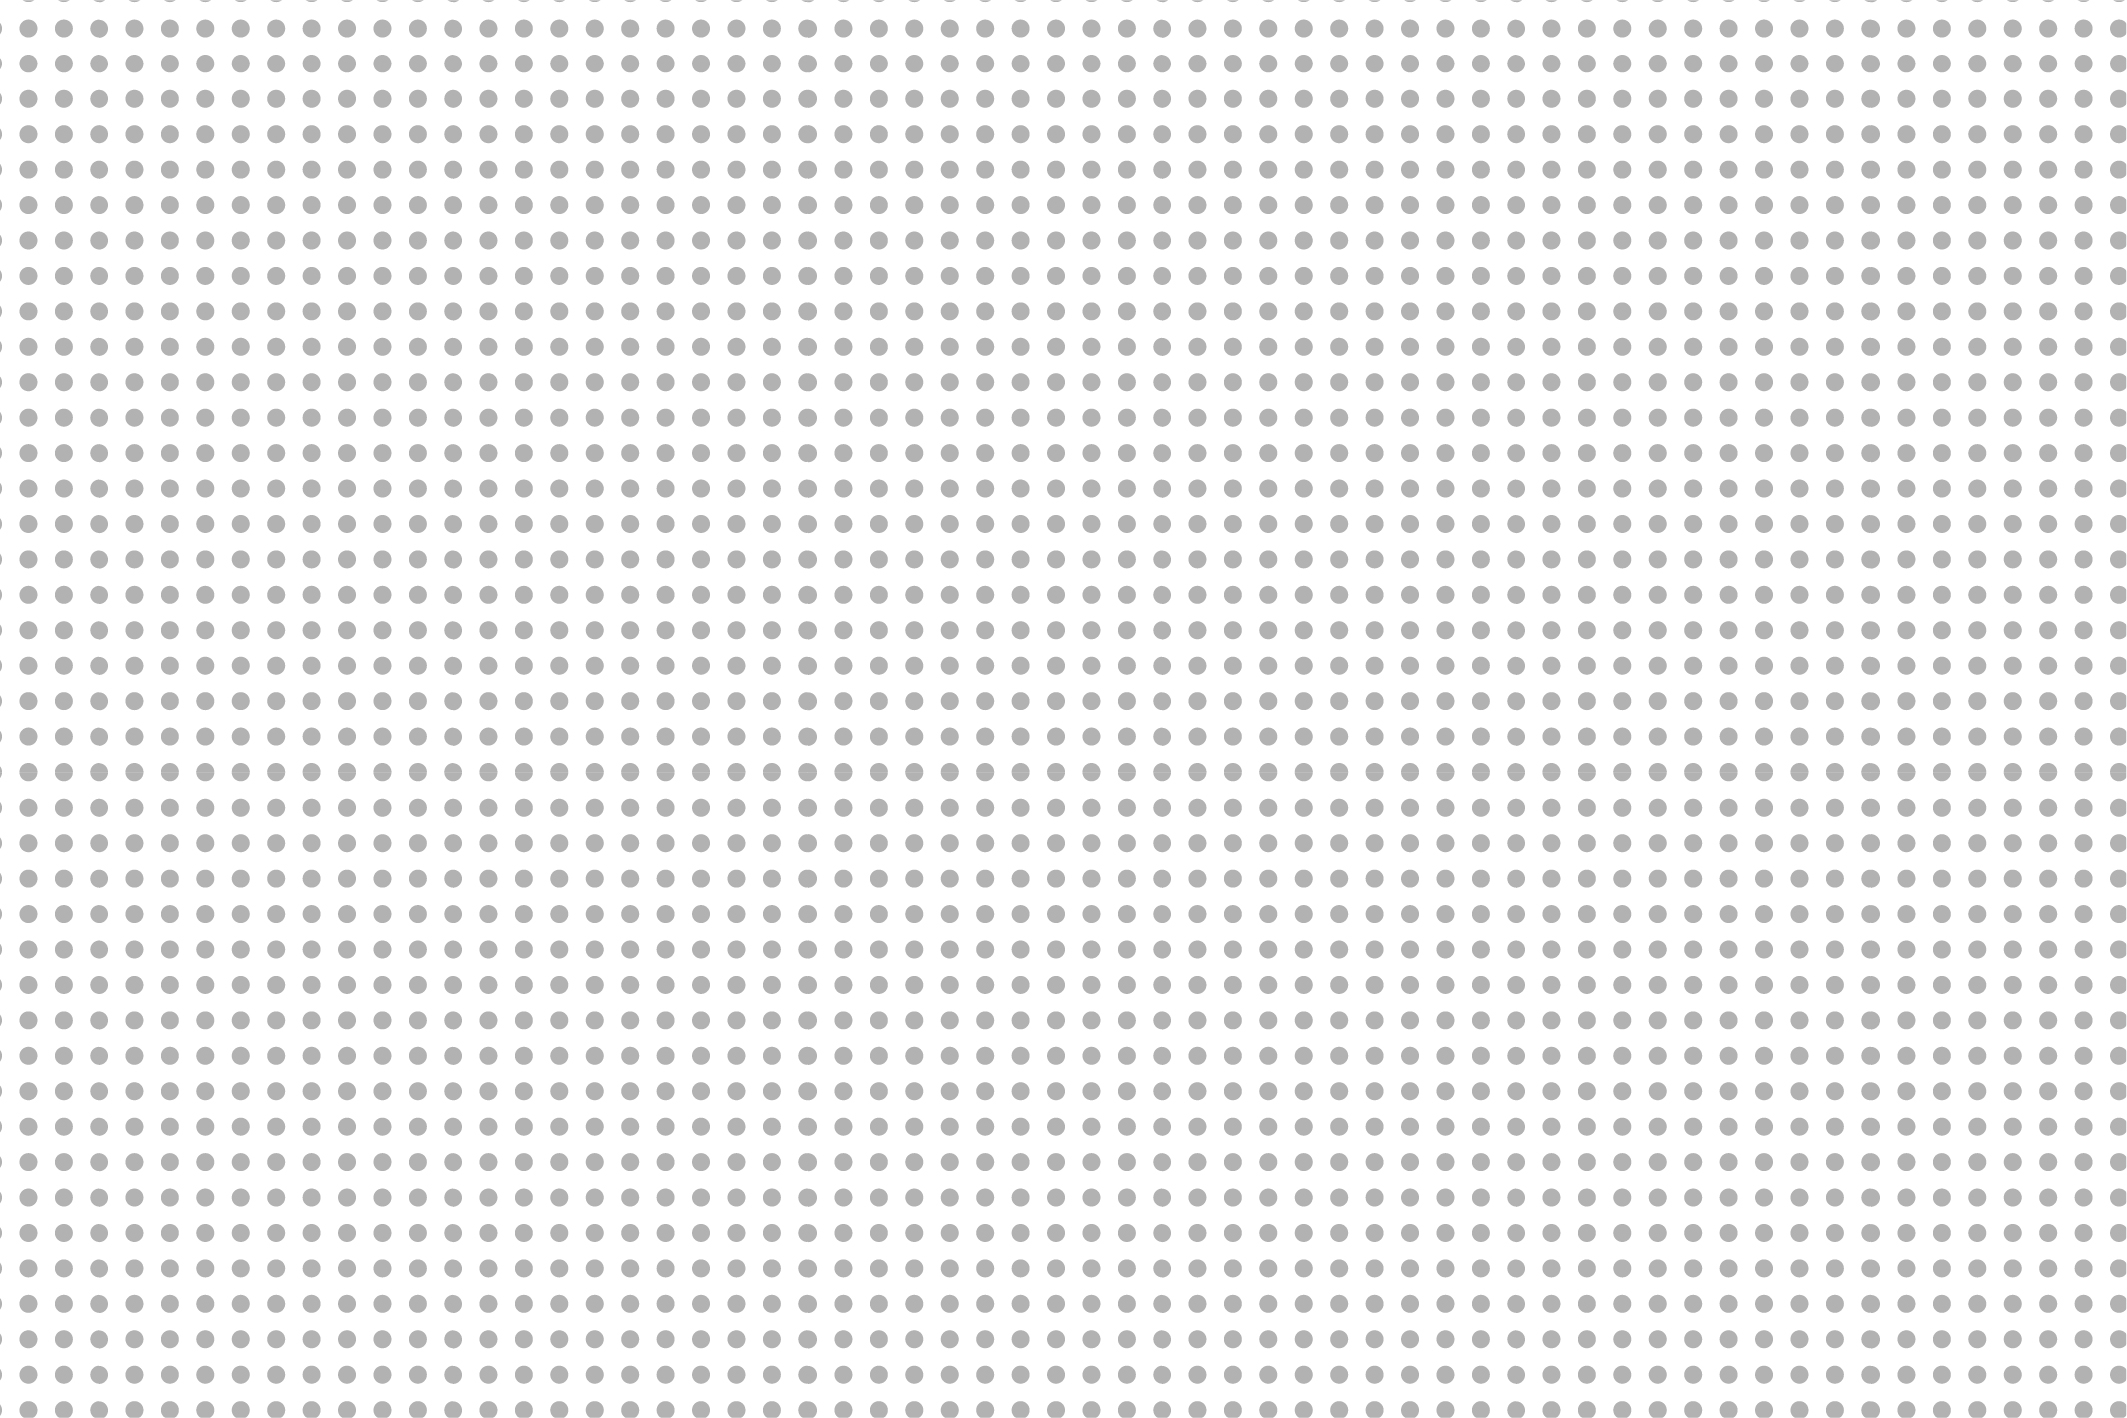 Set of dotted seamless patterns. example image 5